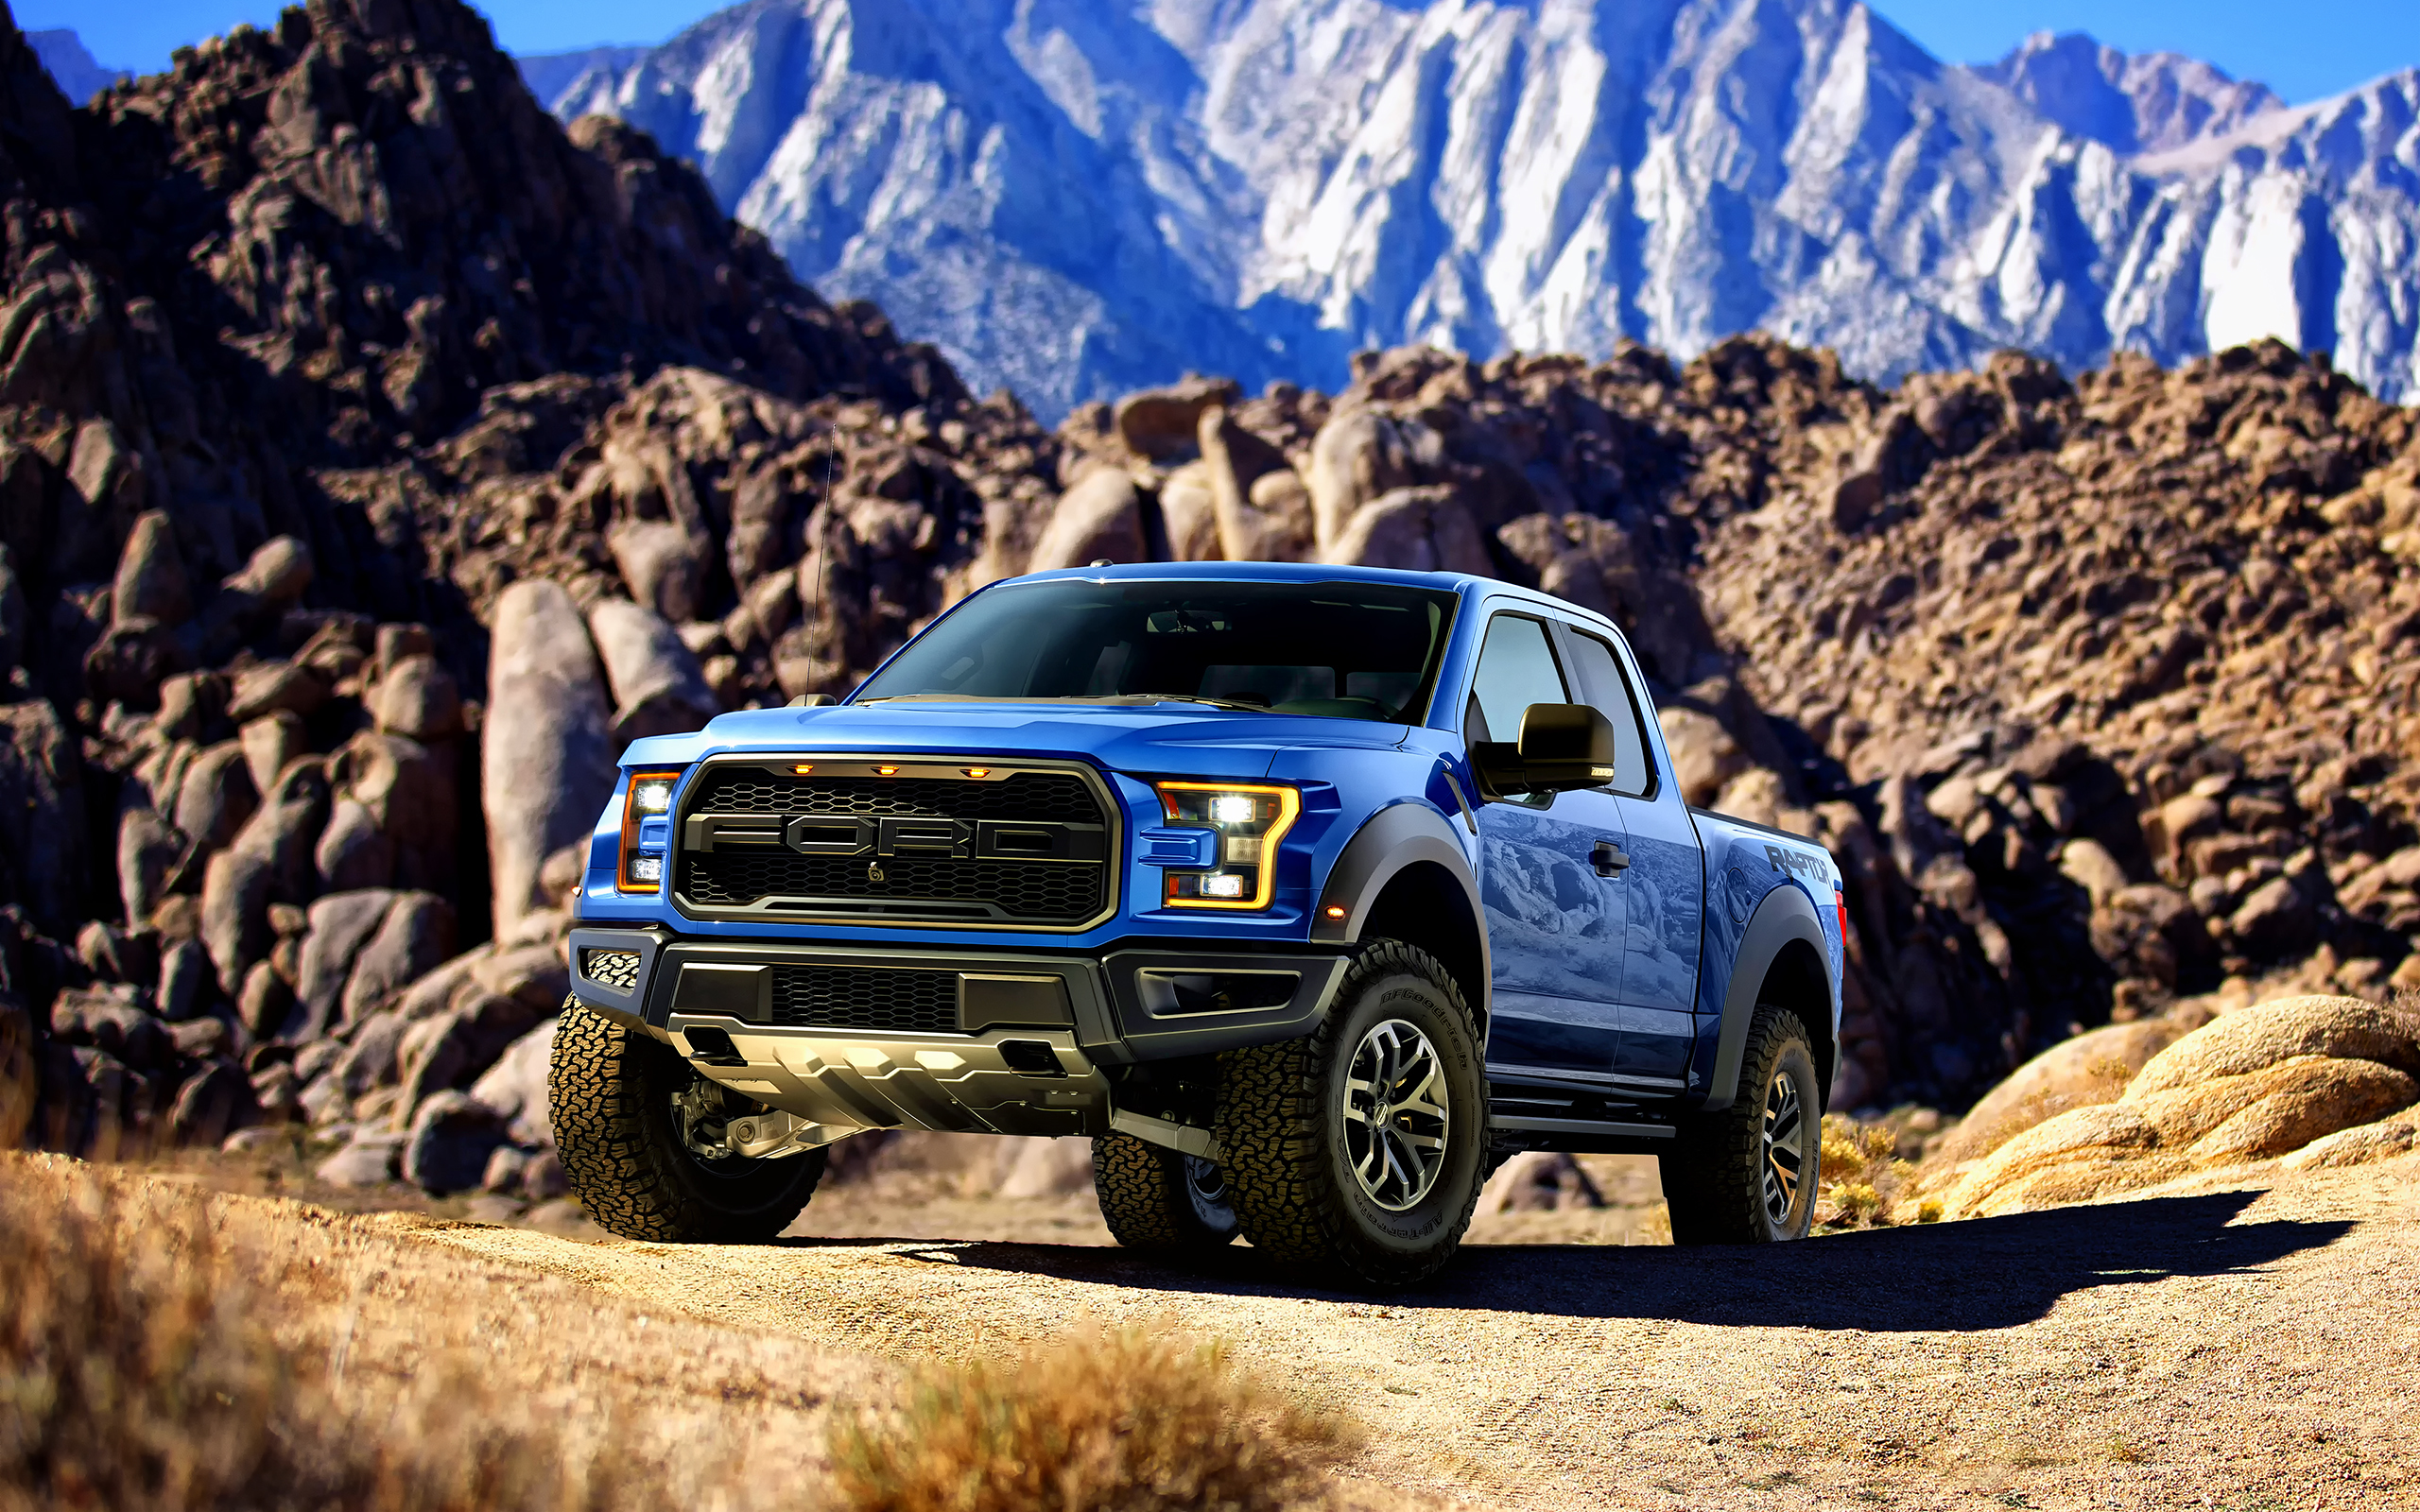 2016 Ford F 150 Raptor Wallpapers HD Wallpapers 2560x1600